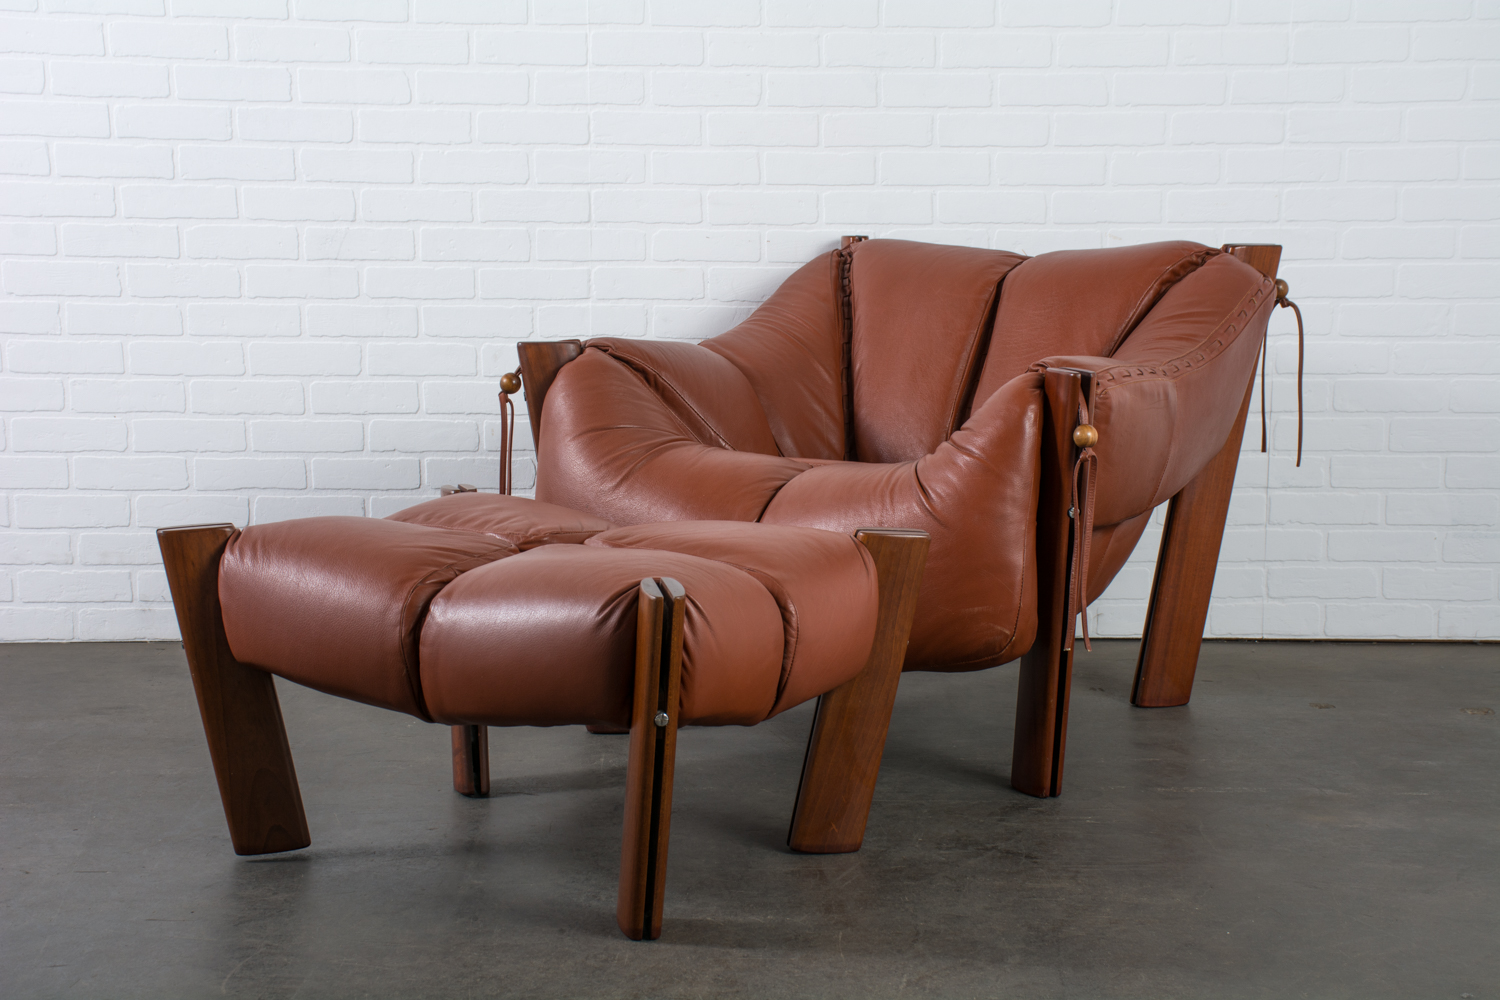 Brazilian Modern Leather Lounge Chair And Ottoman By Percival Lafer Mid Century Modern Finds